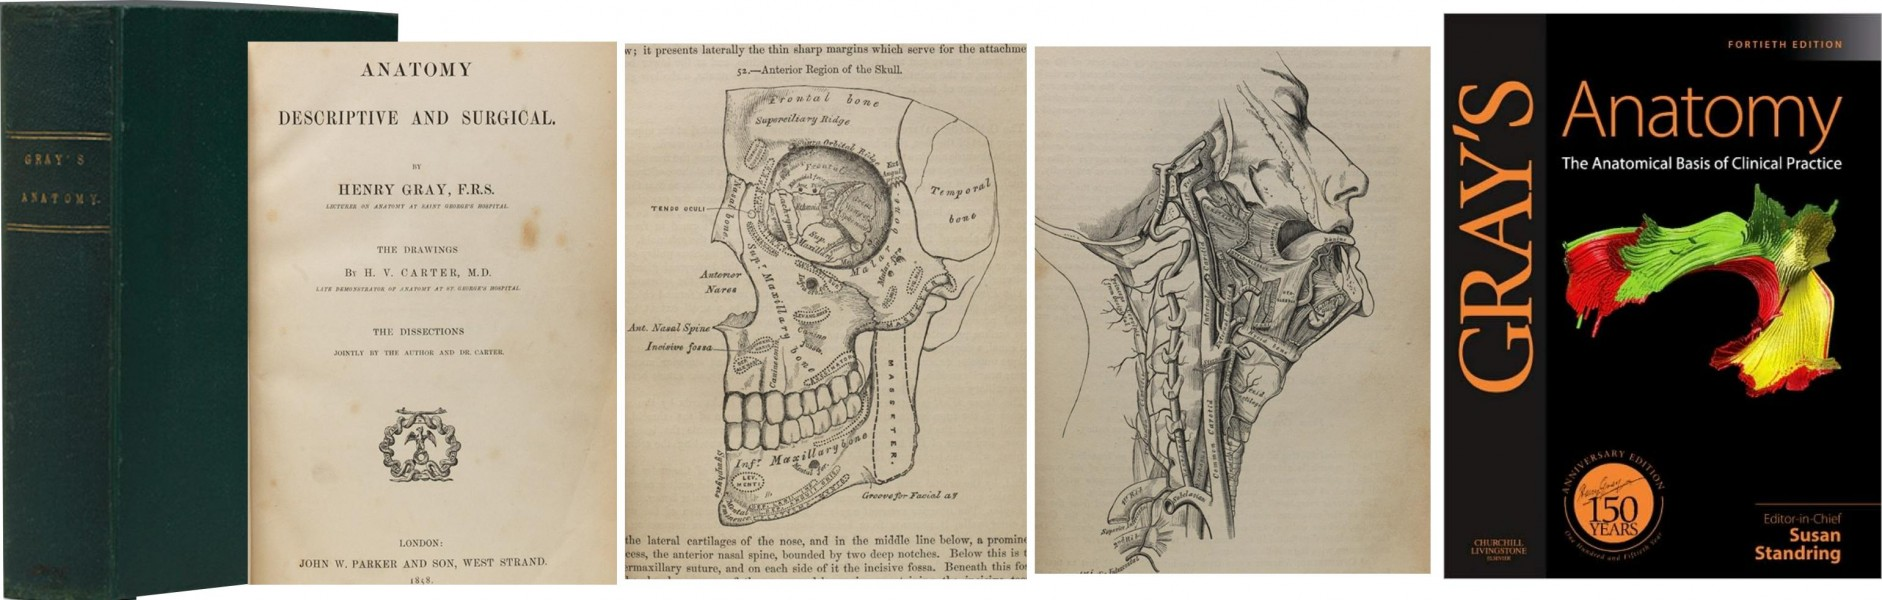 Anatomical Anatomy Prints Bound With Human SkinDICTIONARY PAGE PRINTS